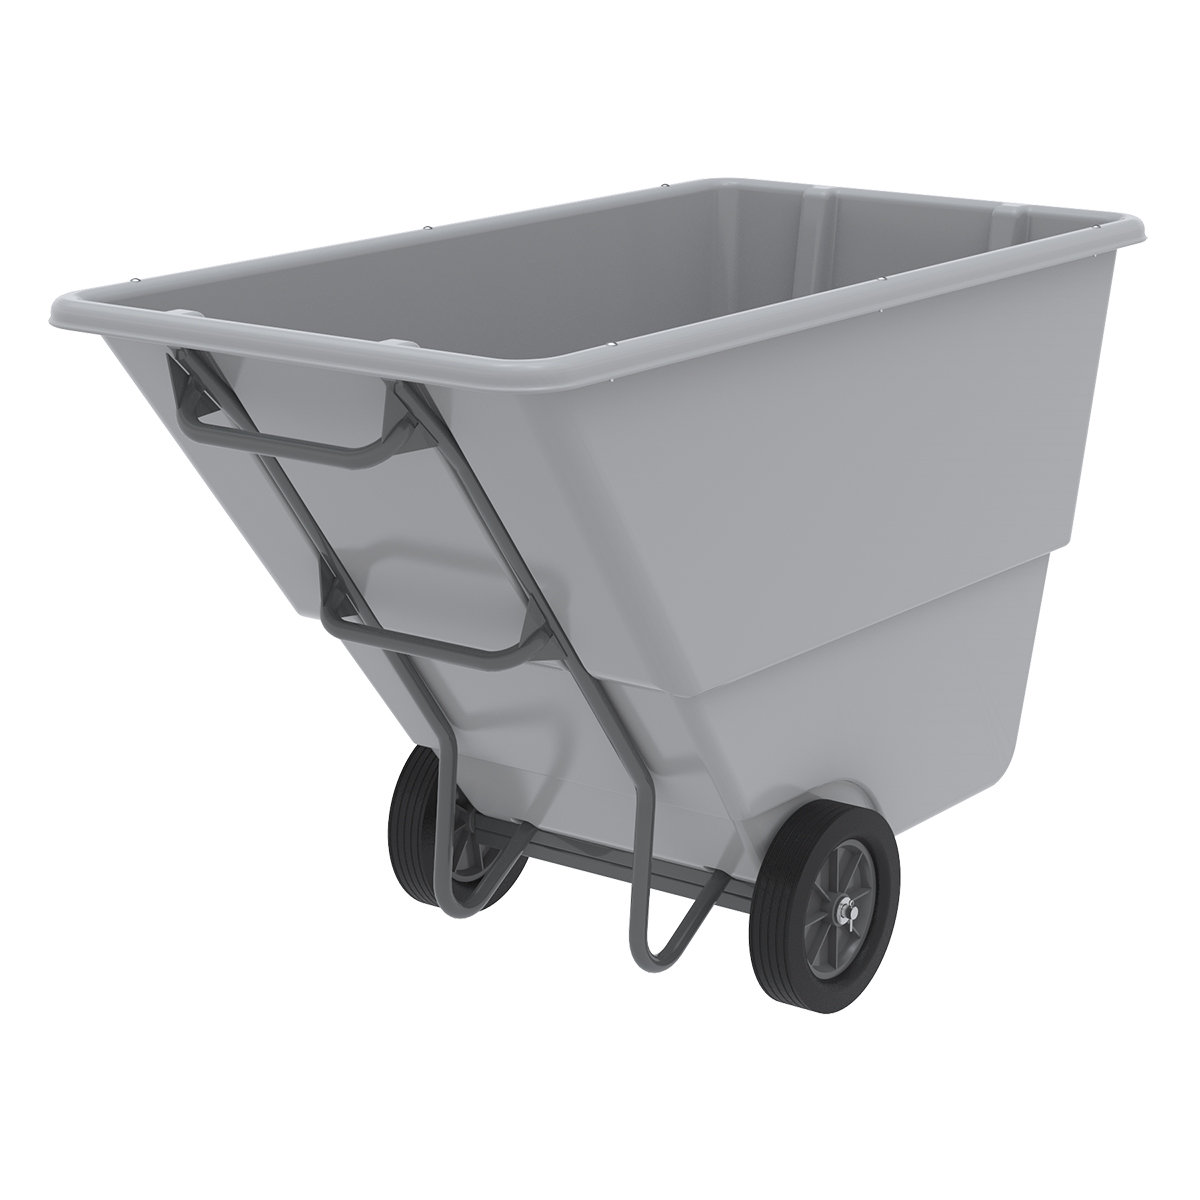 AKRO-TILT TRUCK, MEDIUM DUTY, 200GAL - 1 YD.  This item sold in carton quantities of 1.